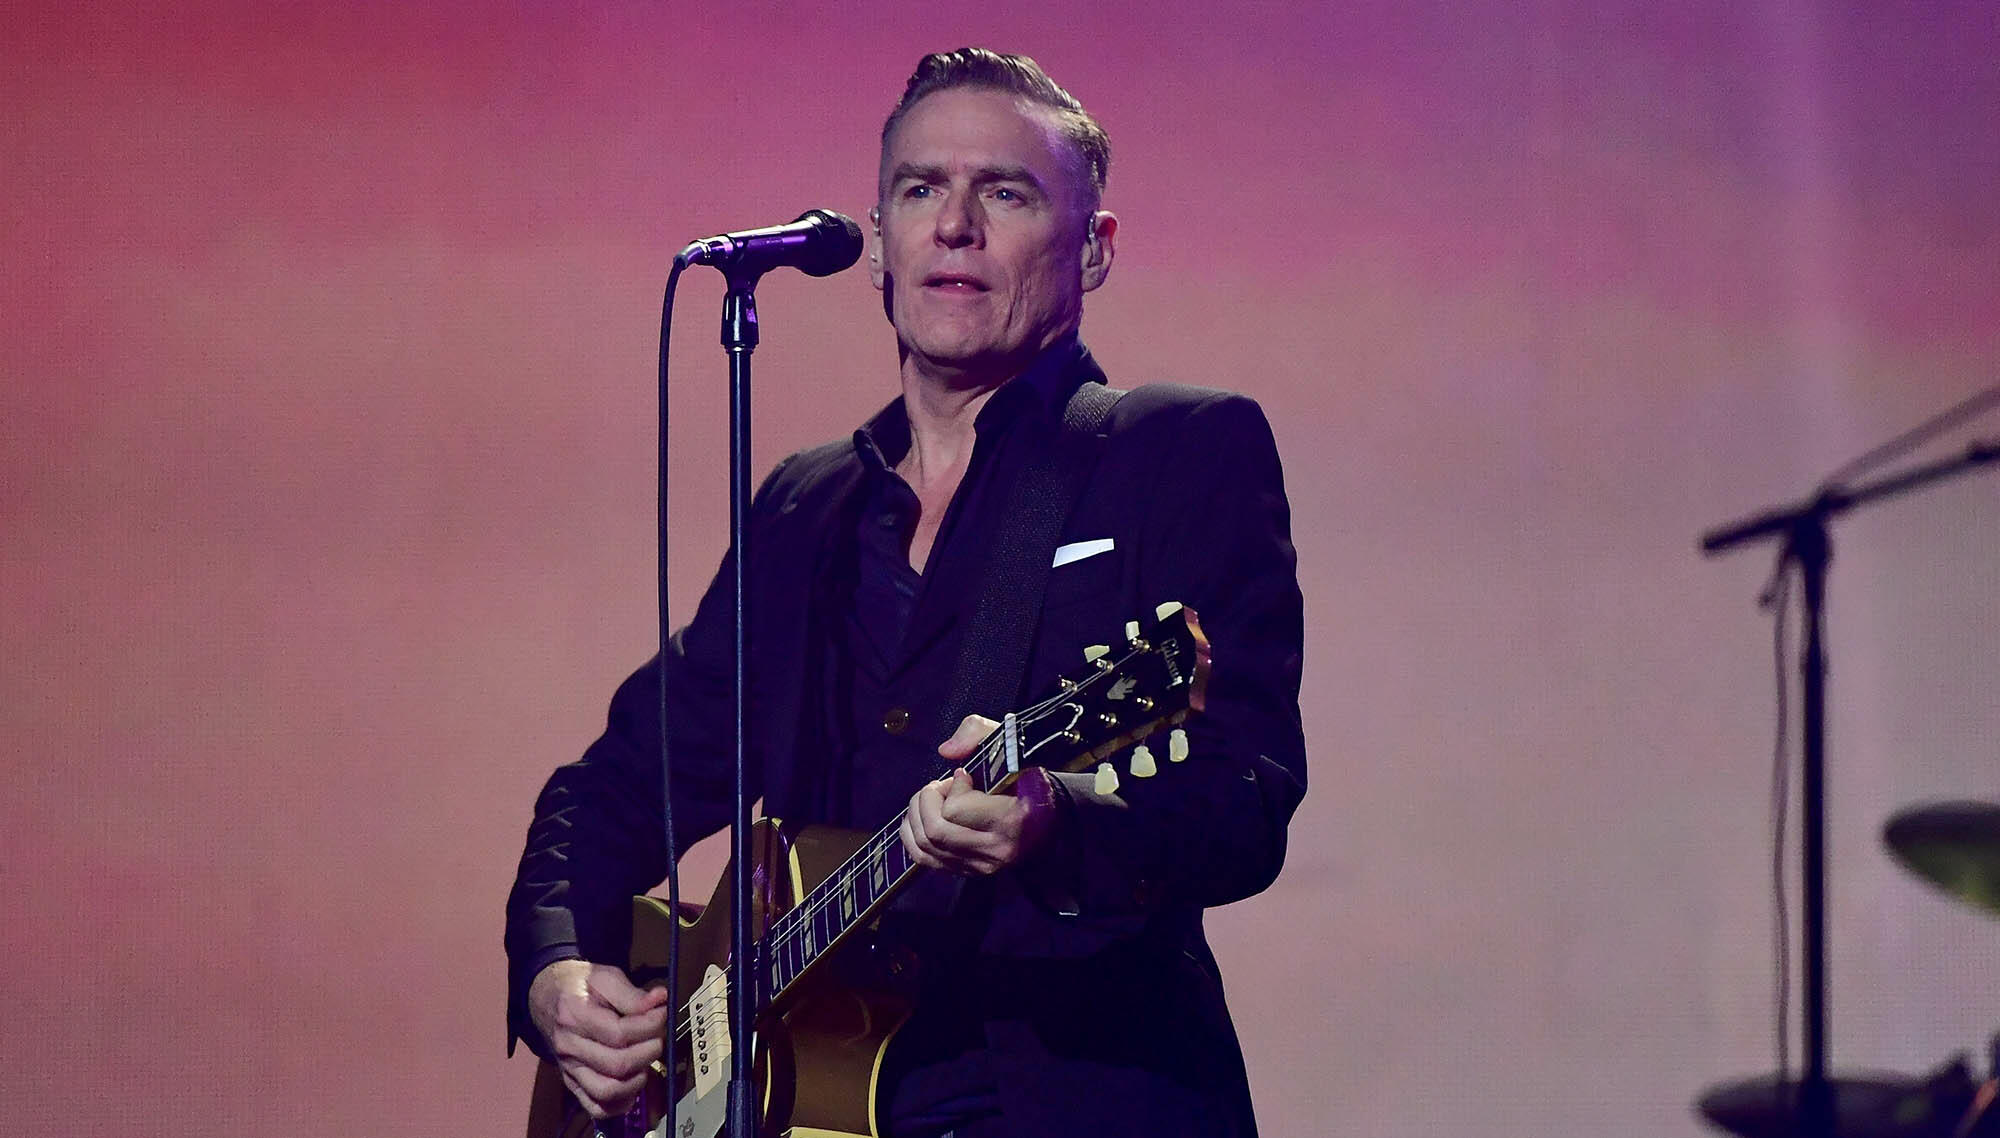 Bryan Adams Says Masters From His 'Reckless' Album Burned In UMG Fire